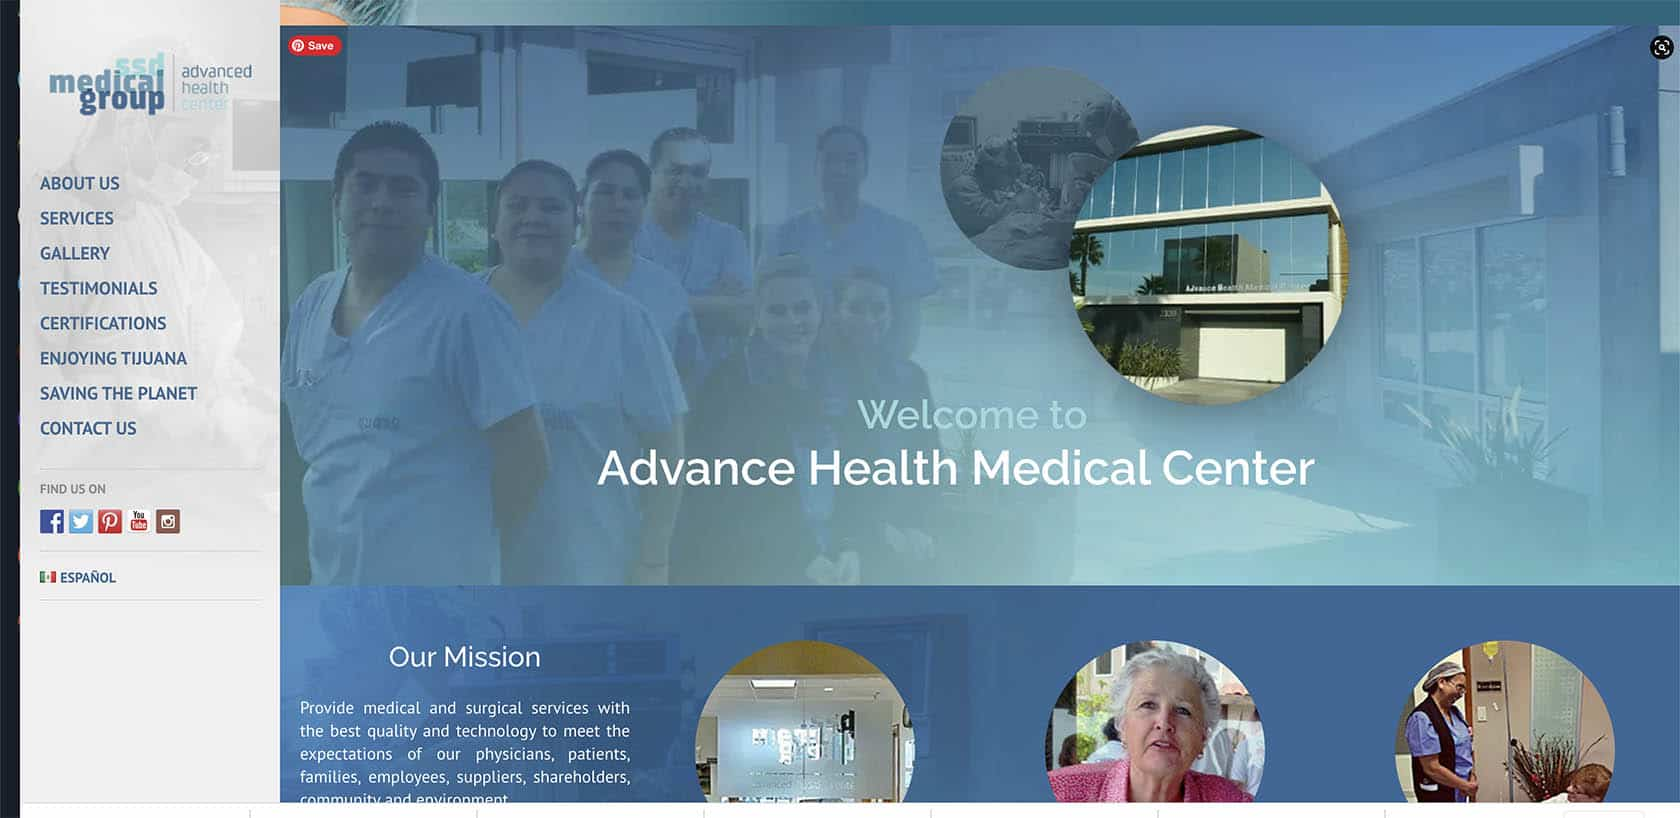 Advanced Health Medical Center. Mexico - Best Cosmetic Surgery Clinics In Mexico